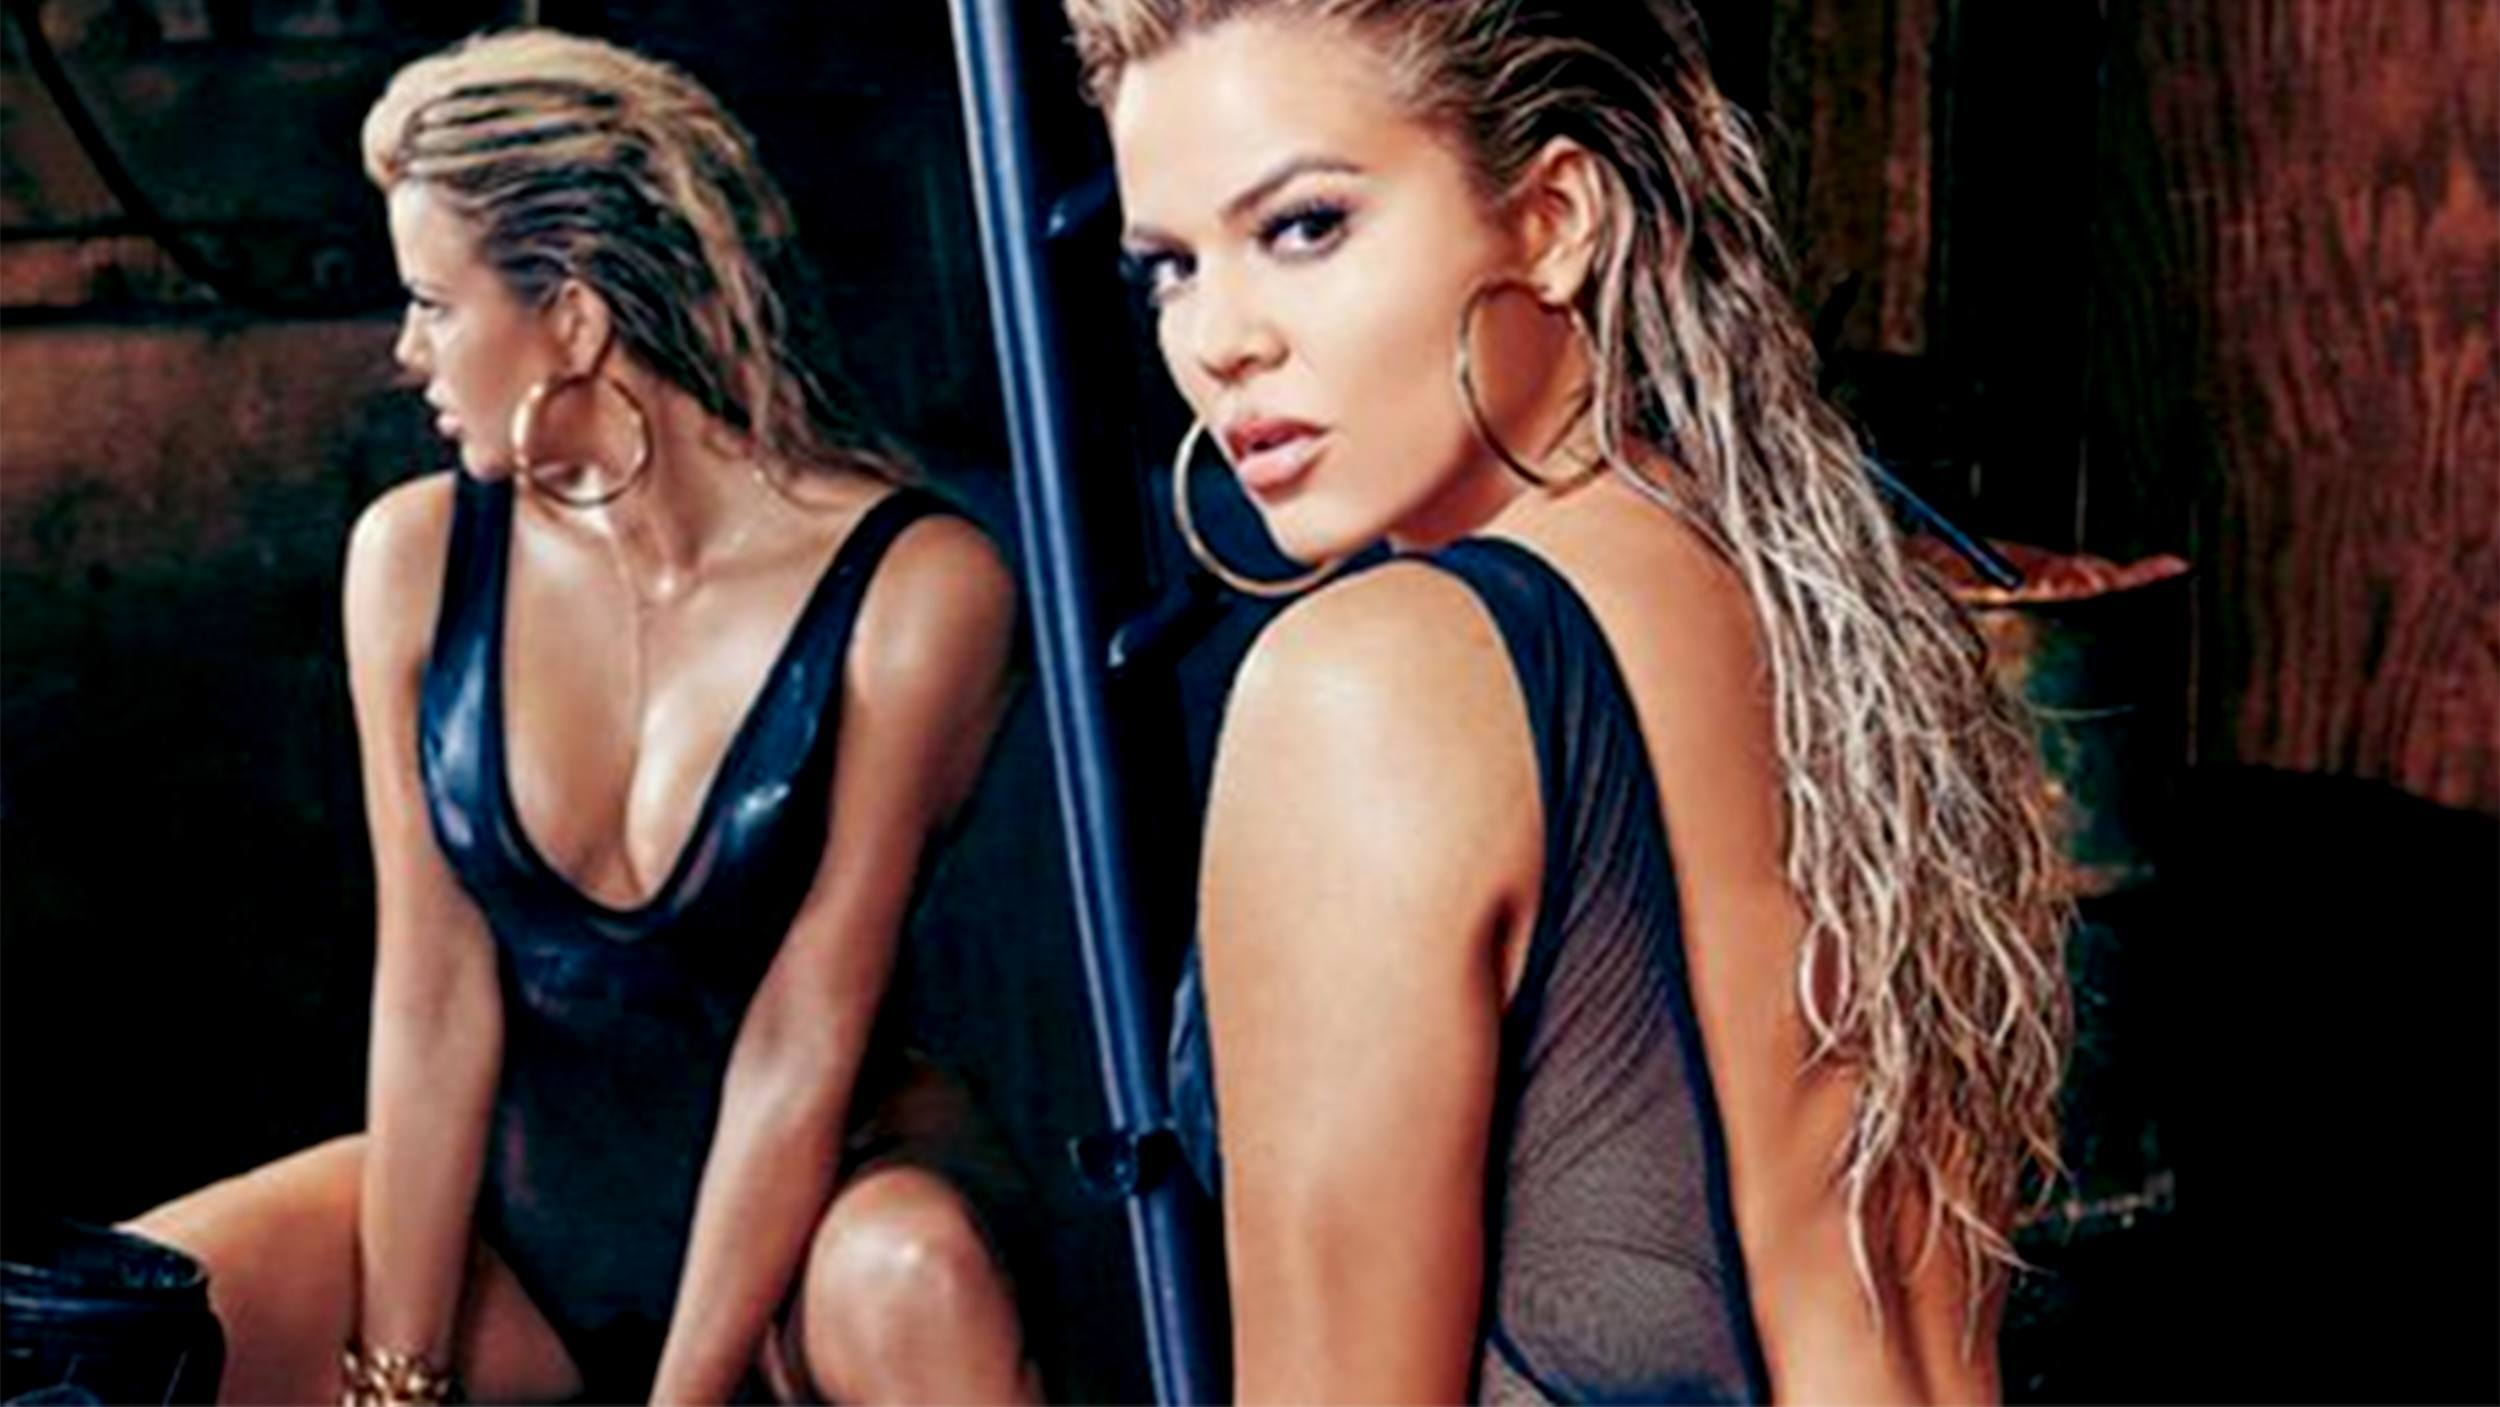 khloe kardashian uncut interview unedited 2015